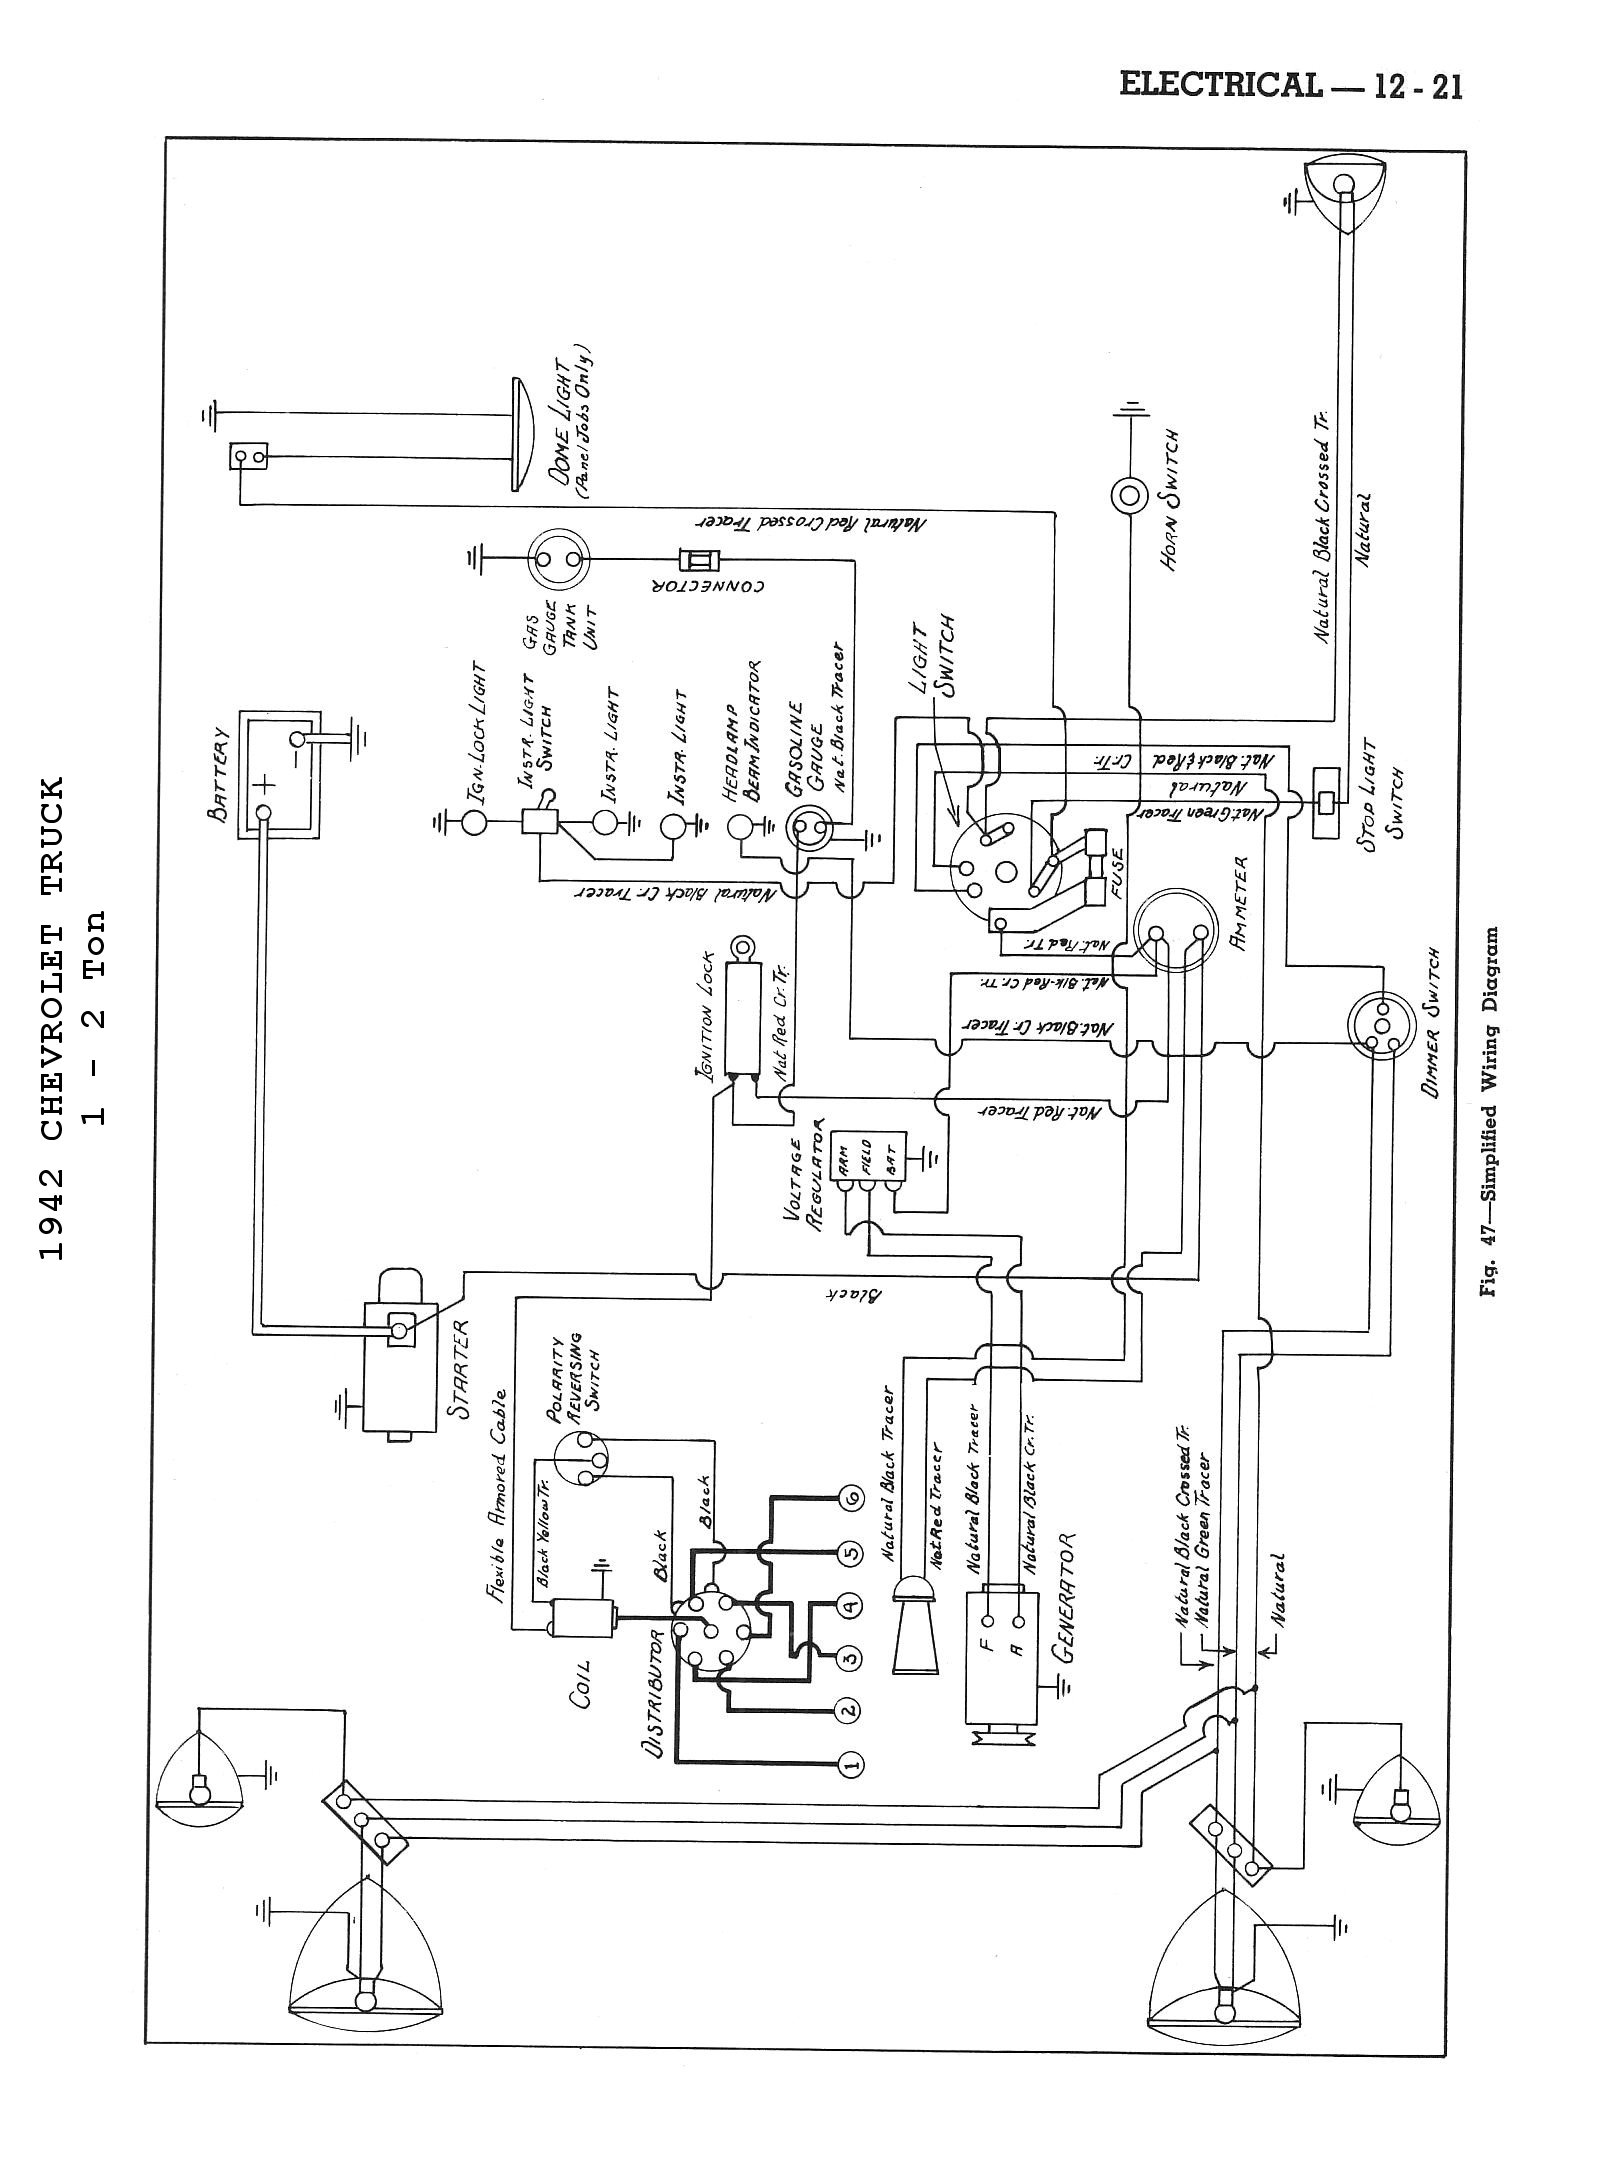 Honda Ct70 Engine Diagram besides 125 Hp Wiring Diagram further Honda 100cc Engine besides Ham Tr Switch Schematic furthermore E Tech Evinrude Wiring Diagram. on wiring diagram for honda wave 100